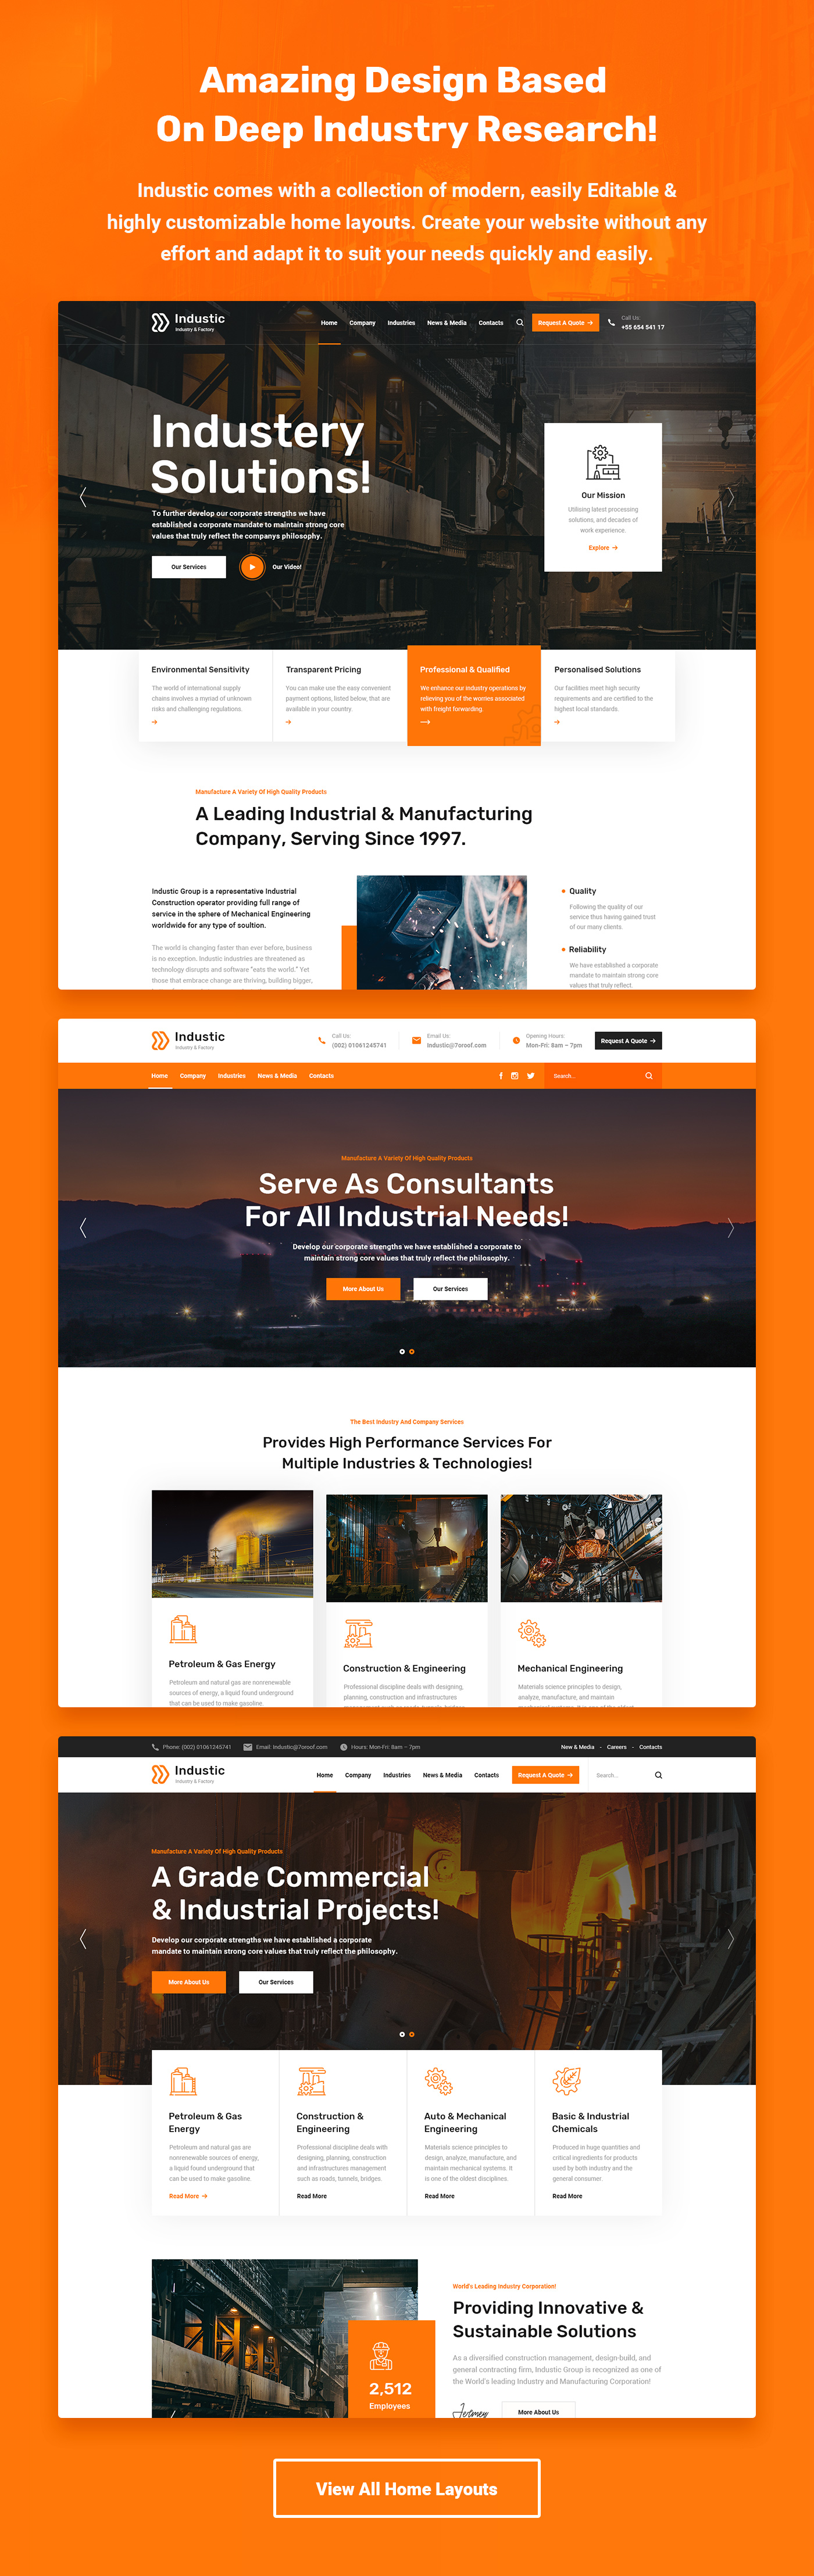 Industic - Factory and Manufacturing HTML5 Template - 6